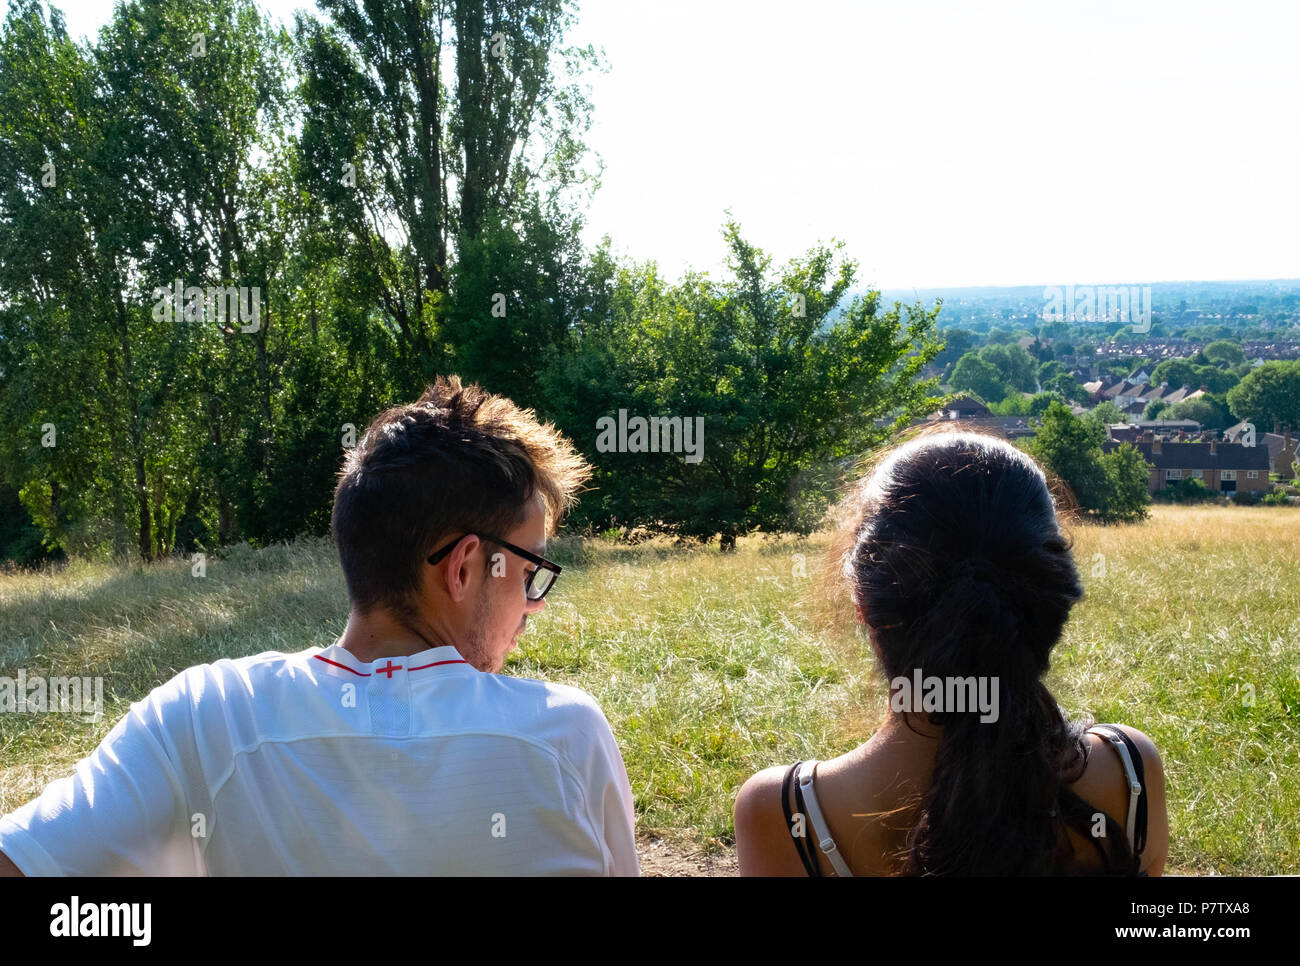 London, England. 7th July 2018. Ekta and Dan enjoying the view over Harrow in the sunshine. The present heatwave is set to continue. ©Tim Ring/Alamy Live News Stock Photo